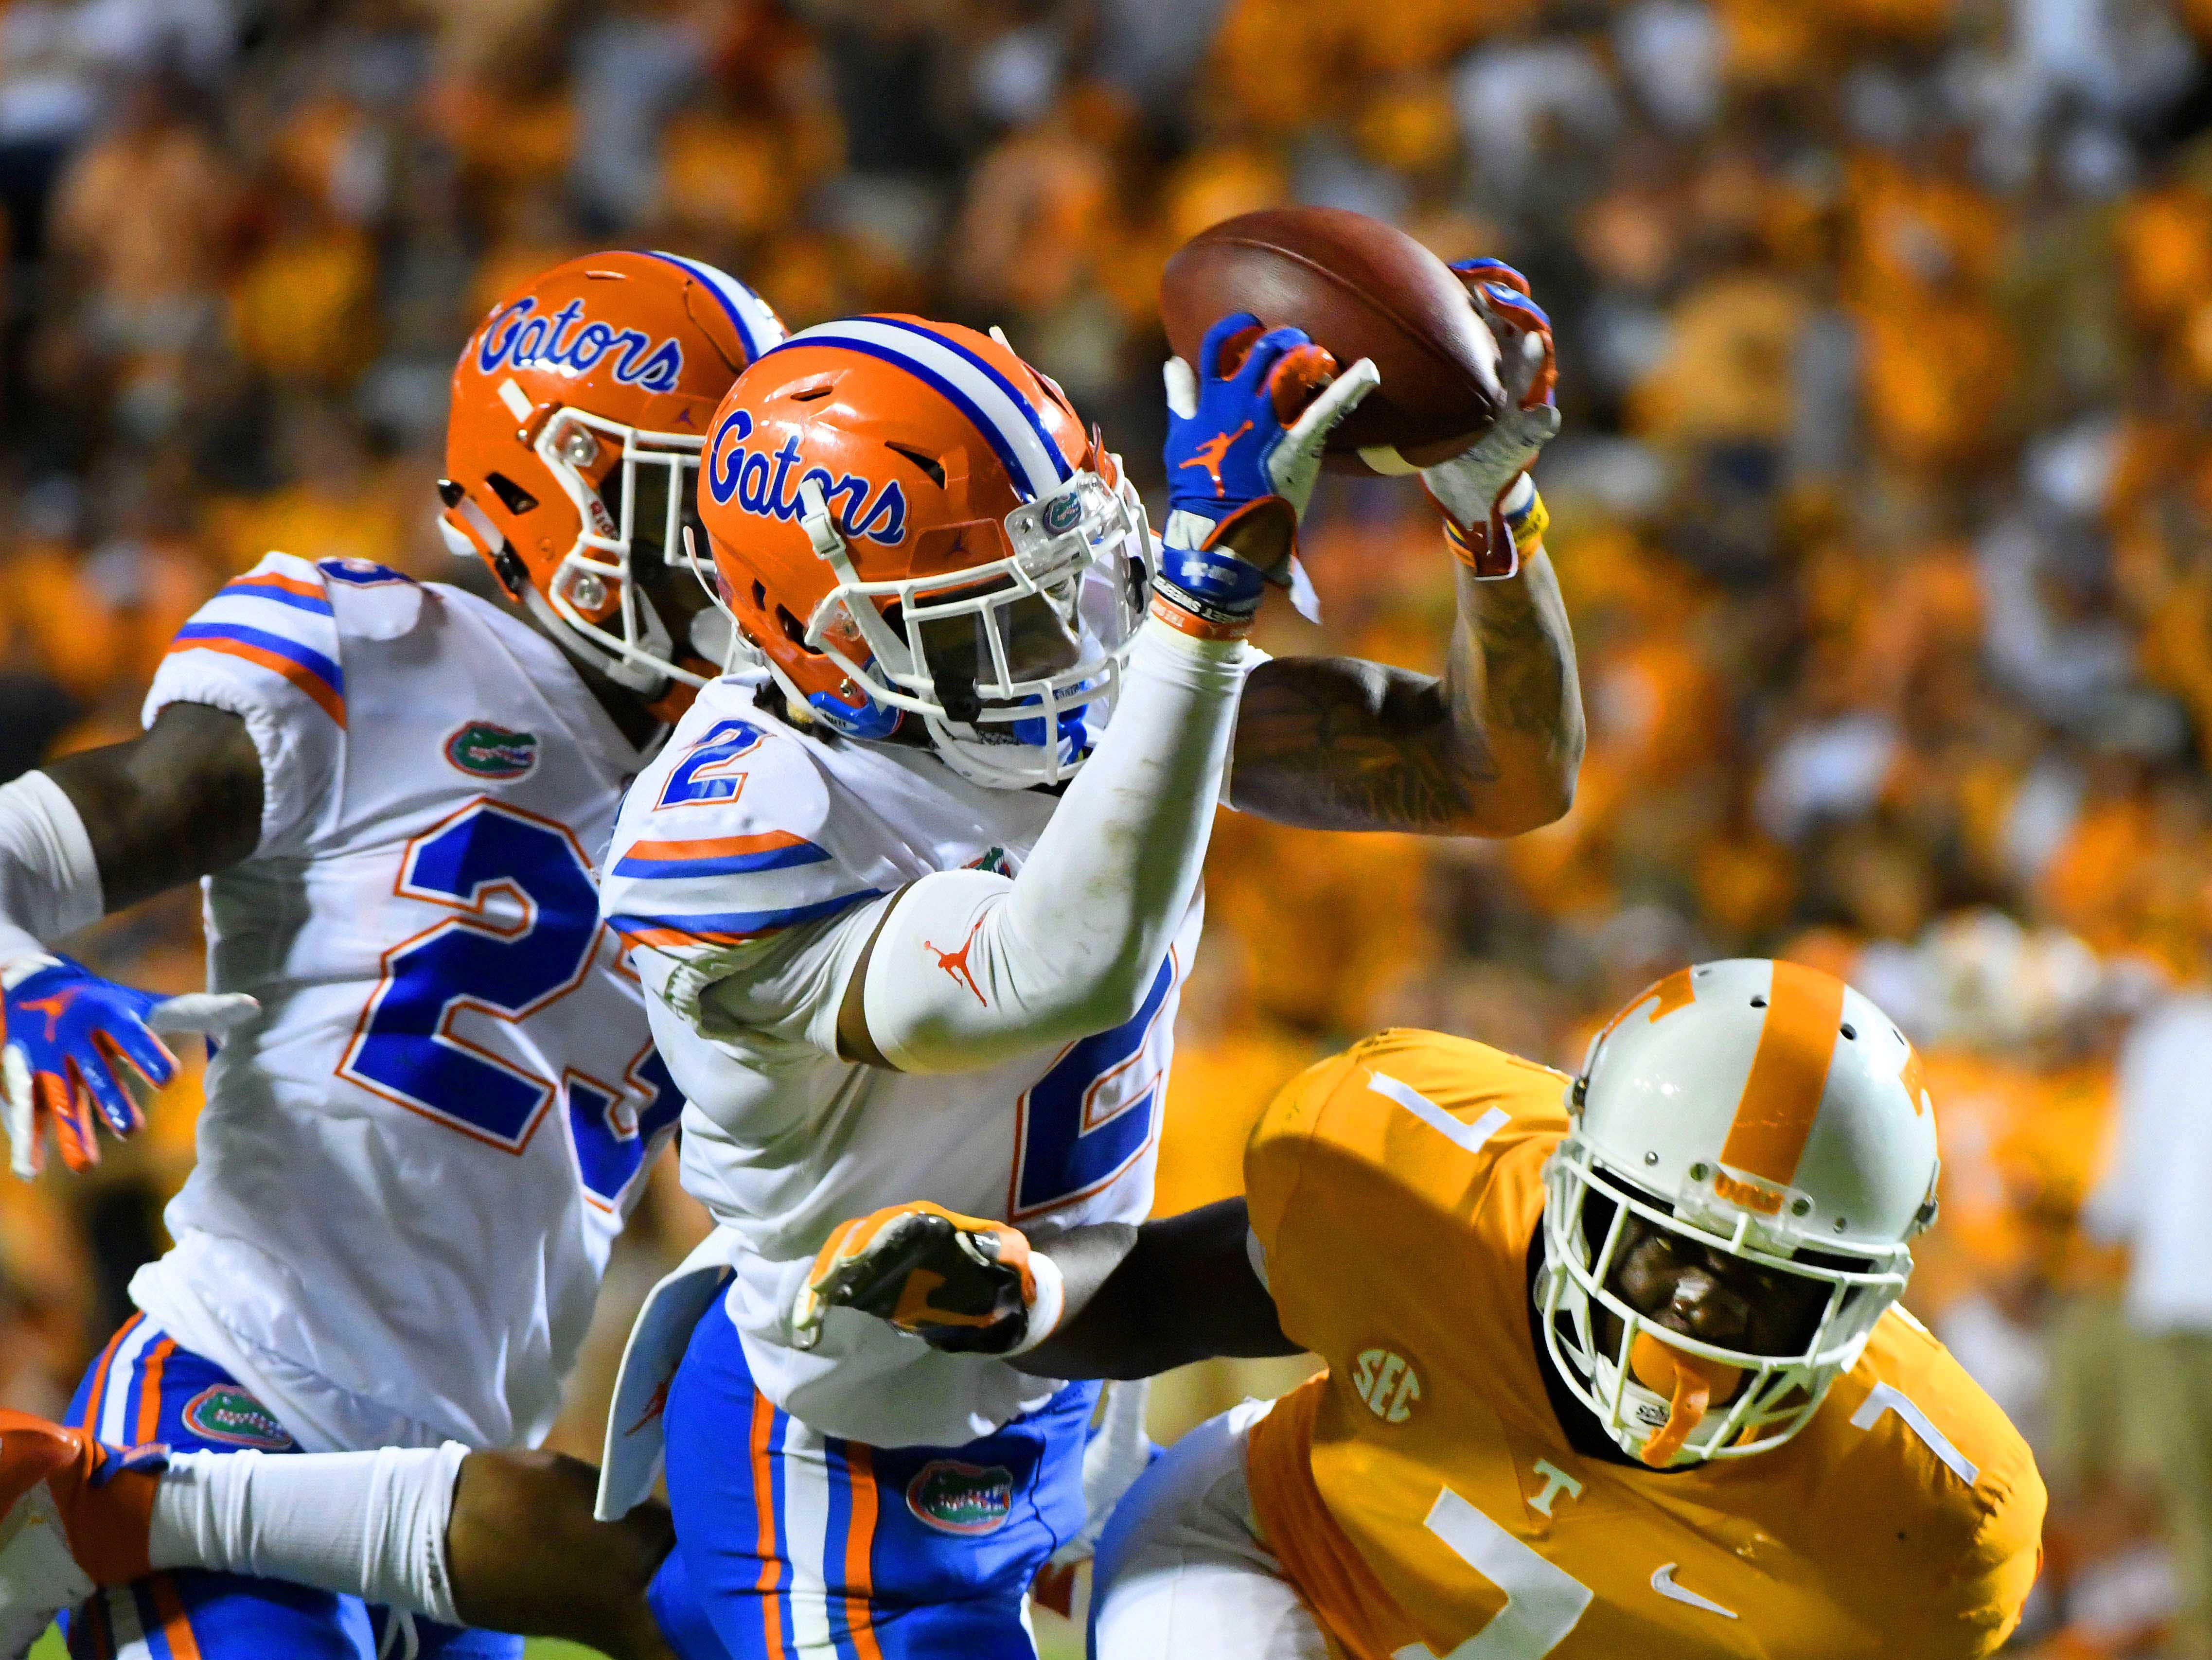 Florida defensive back Brad Stewart, Jr. (2) intercepts a pass intended for Tennessee wide receiver Brandon Johnson (7) during second half of their 47-21 win in Neyland Stadium Saturday, September 22, 2018 in Knoxville, Tenn.